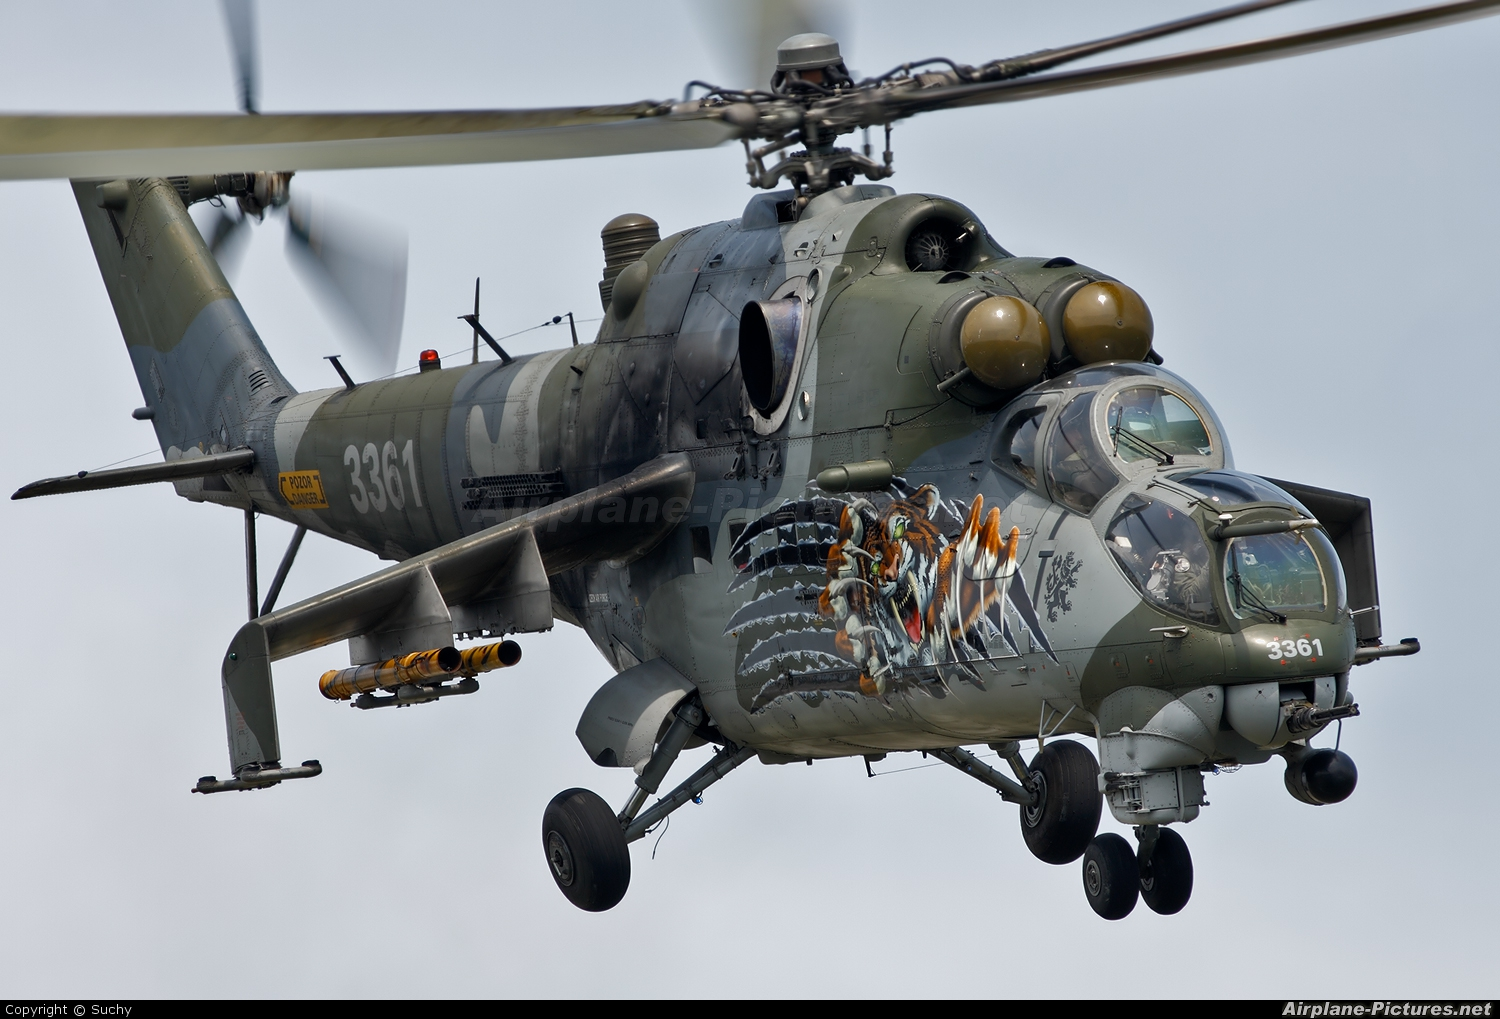 russian helicopters military with 3361 Czech Air Force Mil Mi 35 on File Mi 35M  3 further  as well This Giant New Helicopter Is Like A Greyhound Bus For The Sky together with Ka 50 1024 005 together with Ka 50 2.